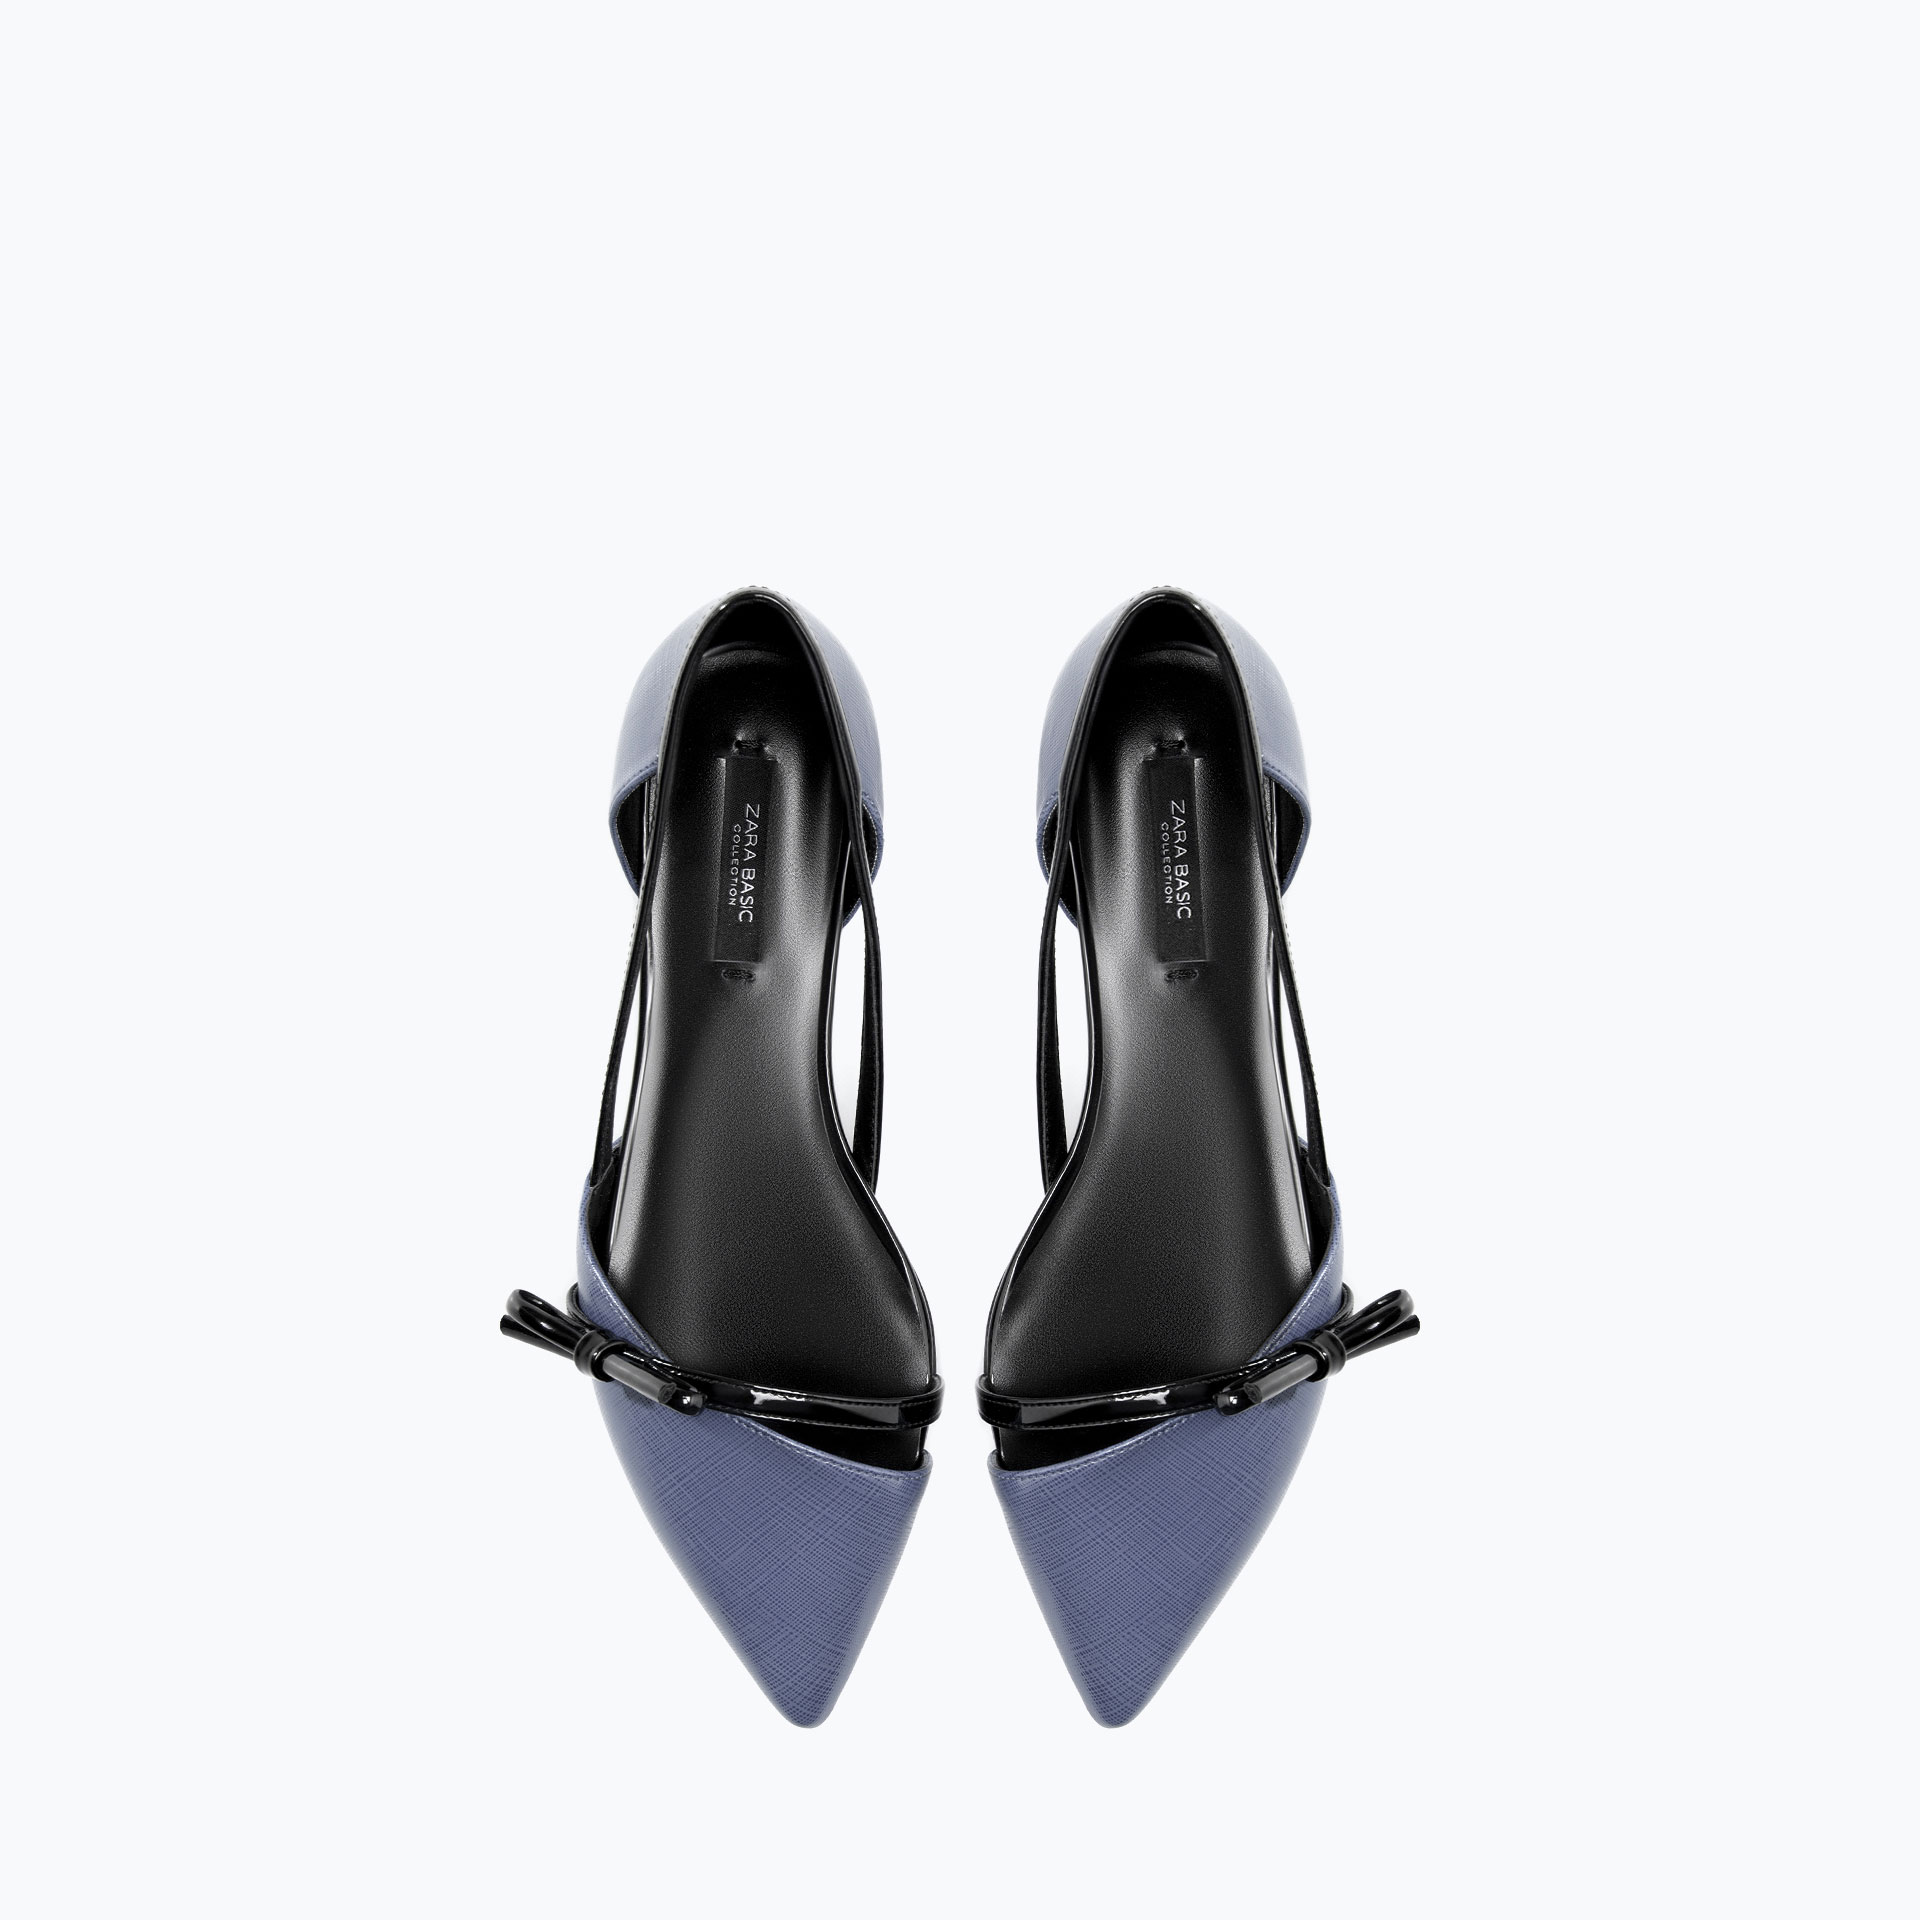 Zara, Flat Shoes with Bow £19.99